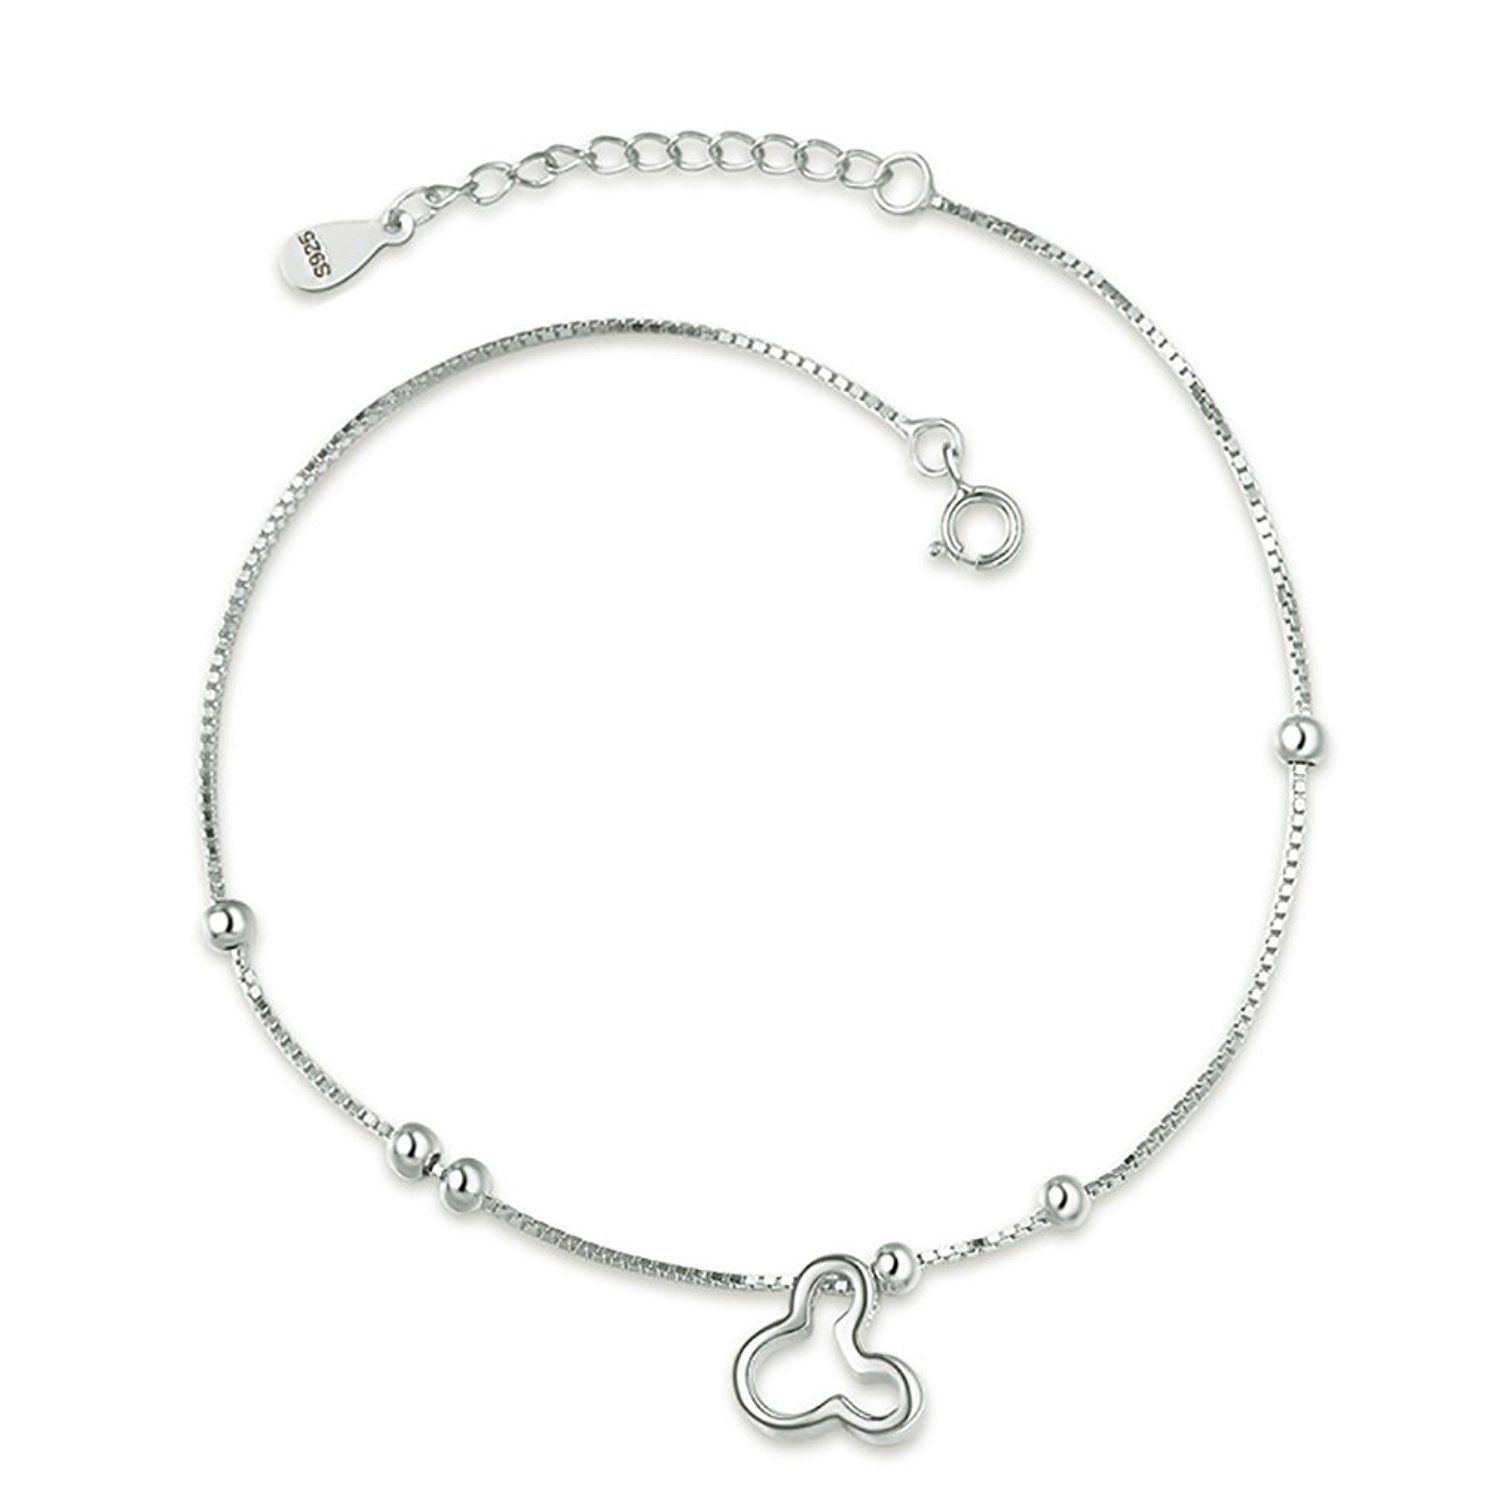 Uniqueen Heart with Heart Ankle Bracelets 925 Sterling Silver Sexy Lucky Love Anklet Chain Beach Girl fc23UT